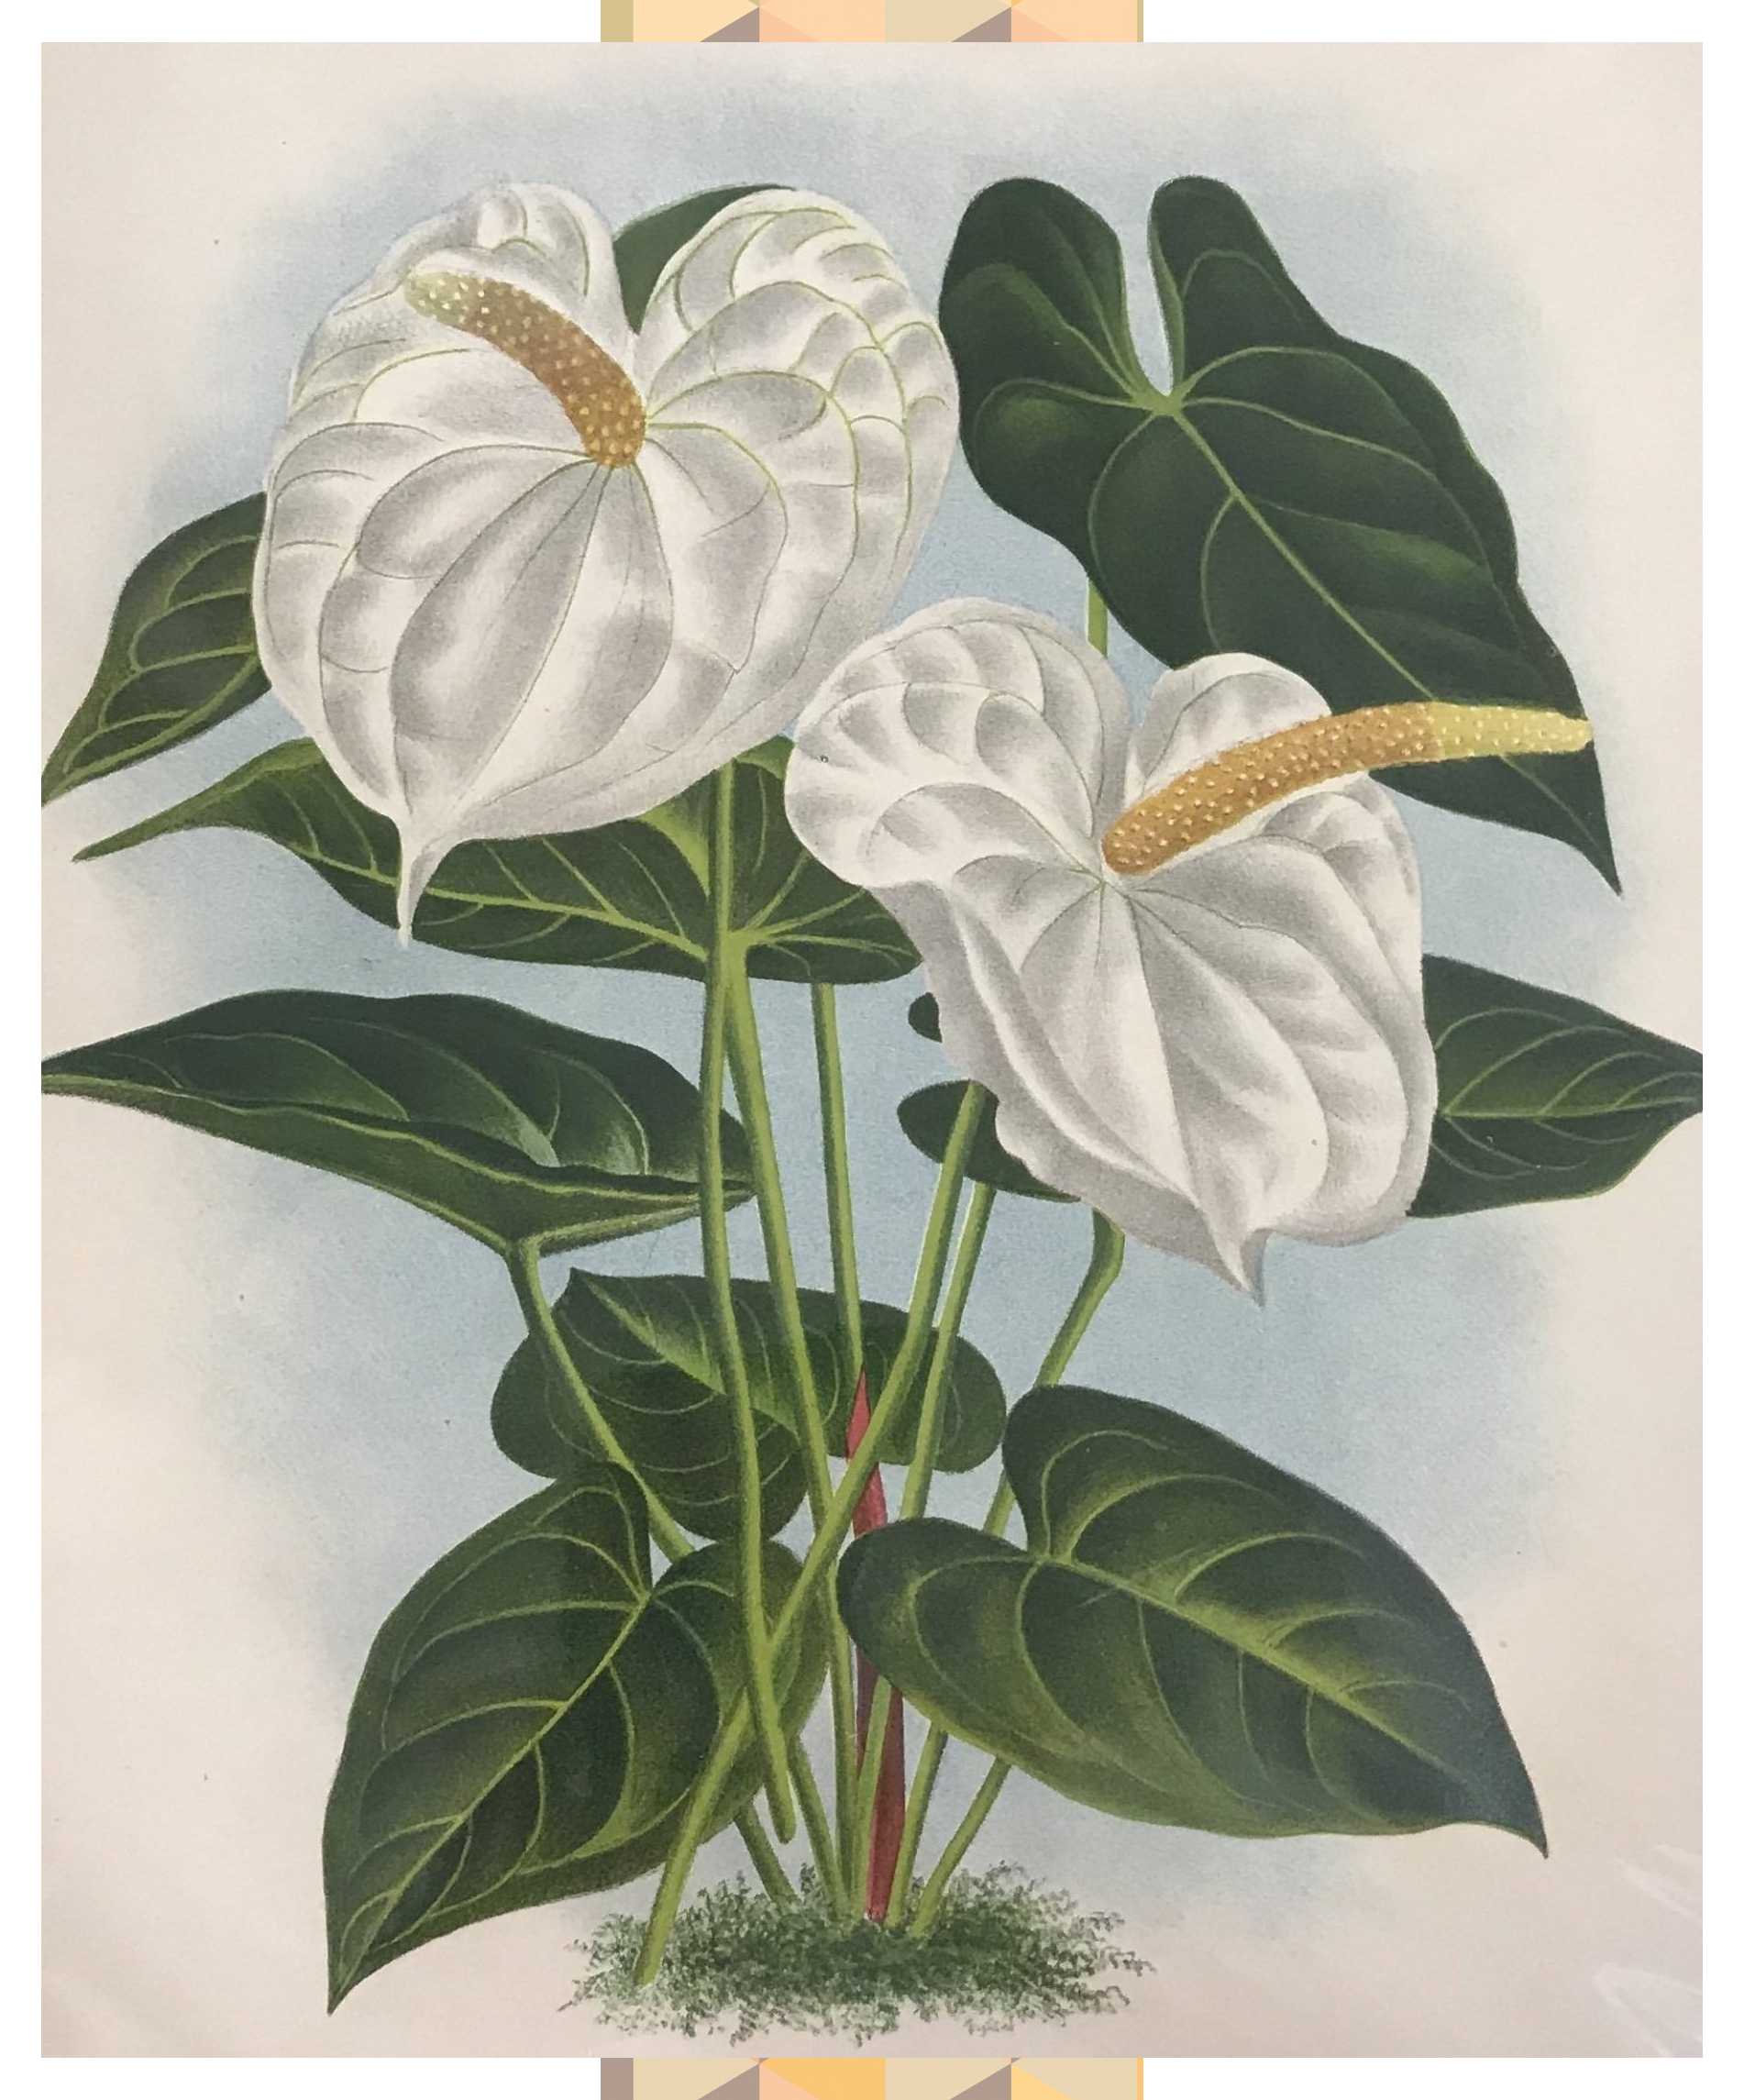 1880 Original Hand Colored Print Of White Anthurium Wambekeanum Anthurium Colored Hand In 2020 Tropical Flowers Illustration Botanical Illustration Flower Drawing